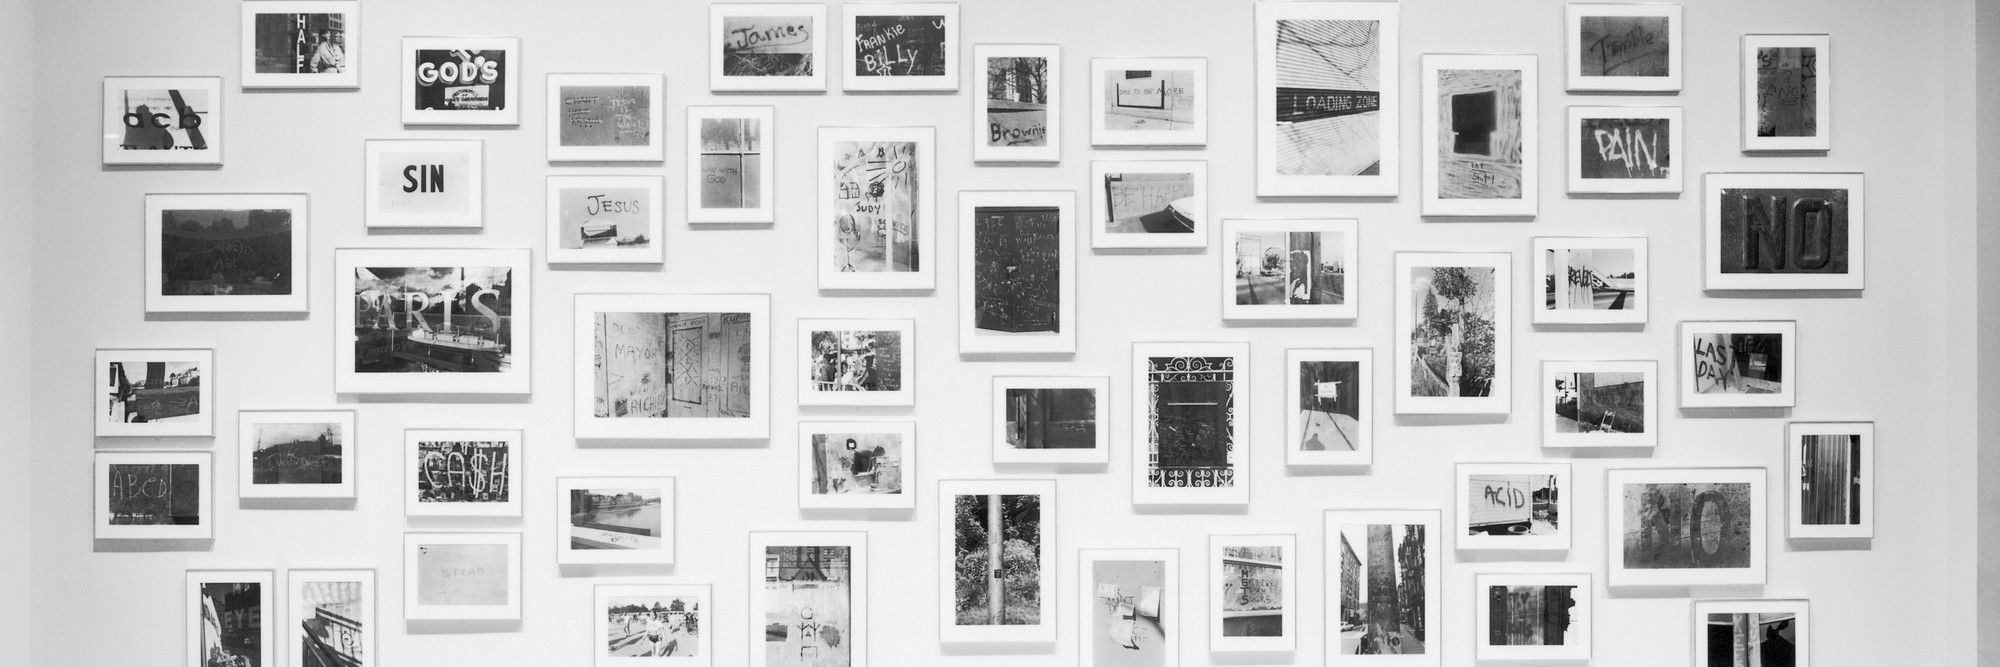 Installation view of Lee Friedlander: Letters from the People at The Museum of Modern Art, New York. Photo: Mali Olatunji